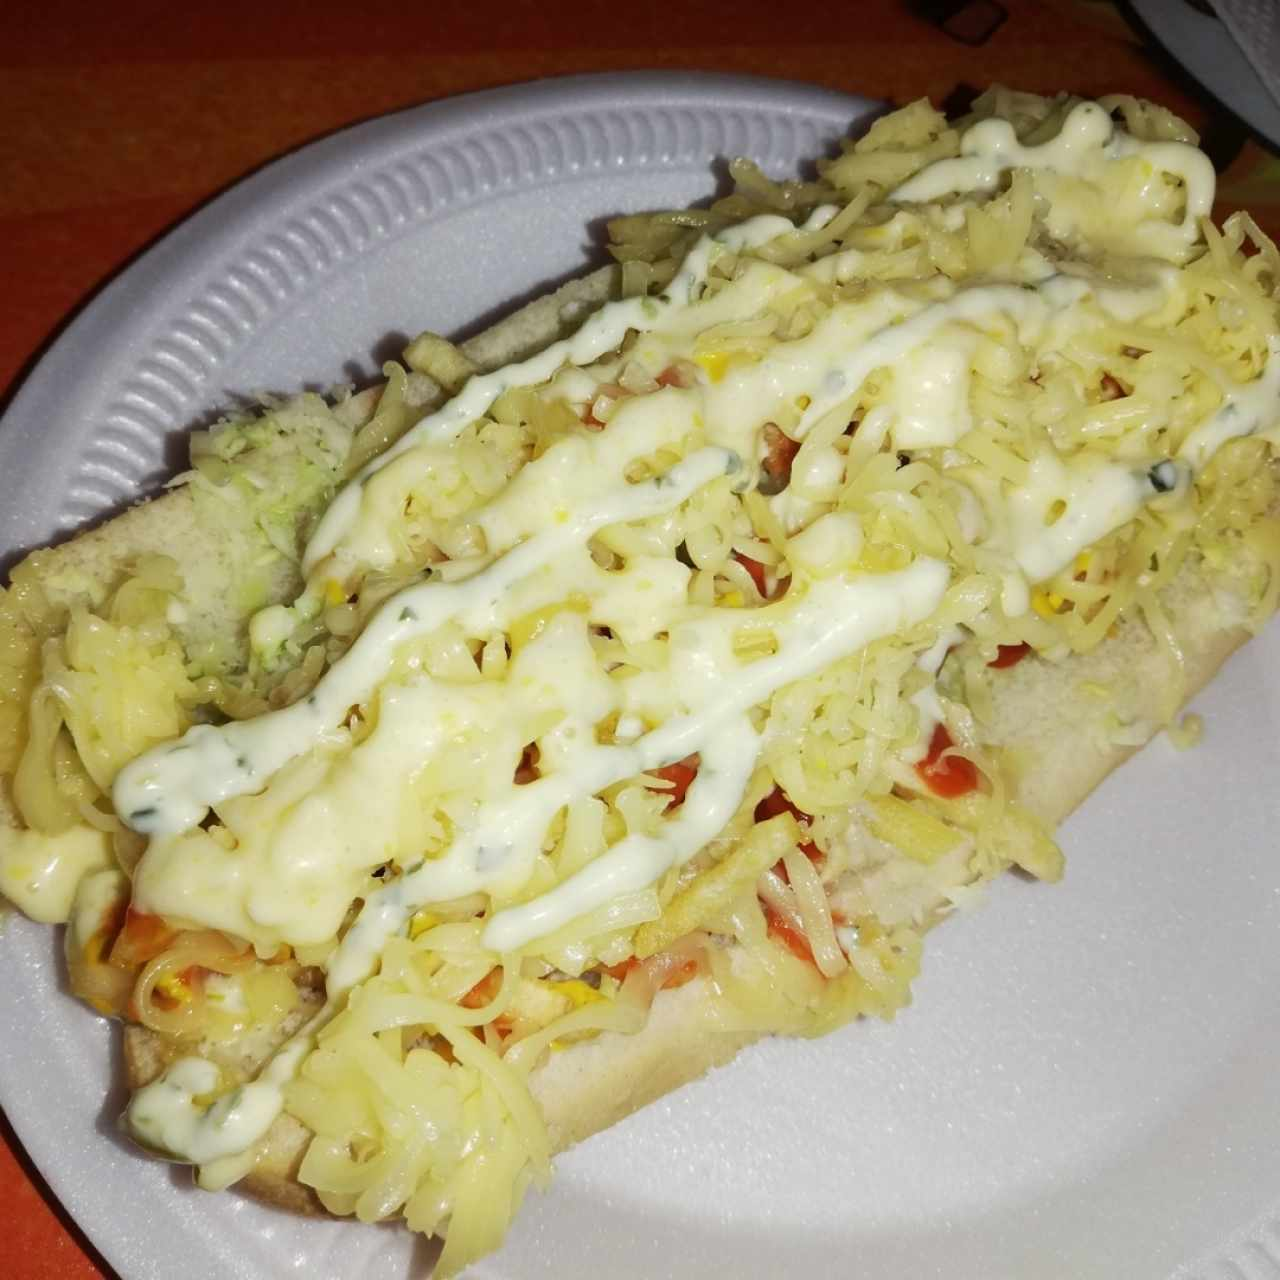 Hot dog regular con extra de queso